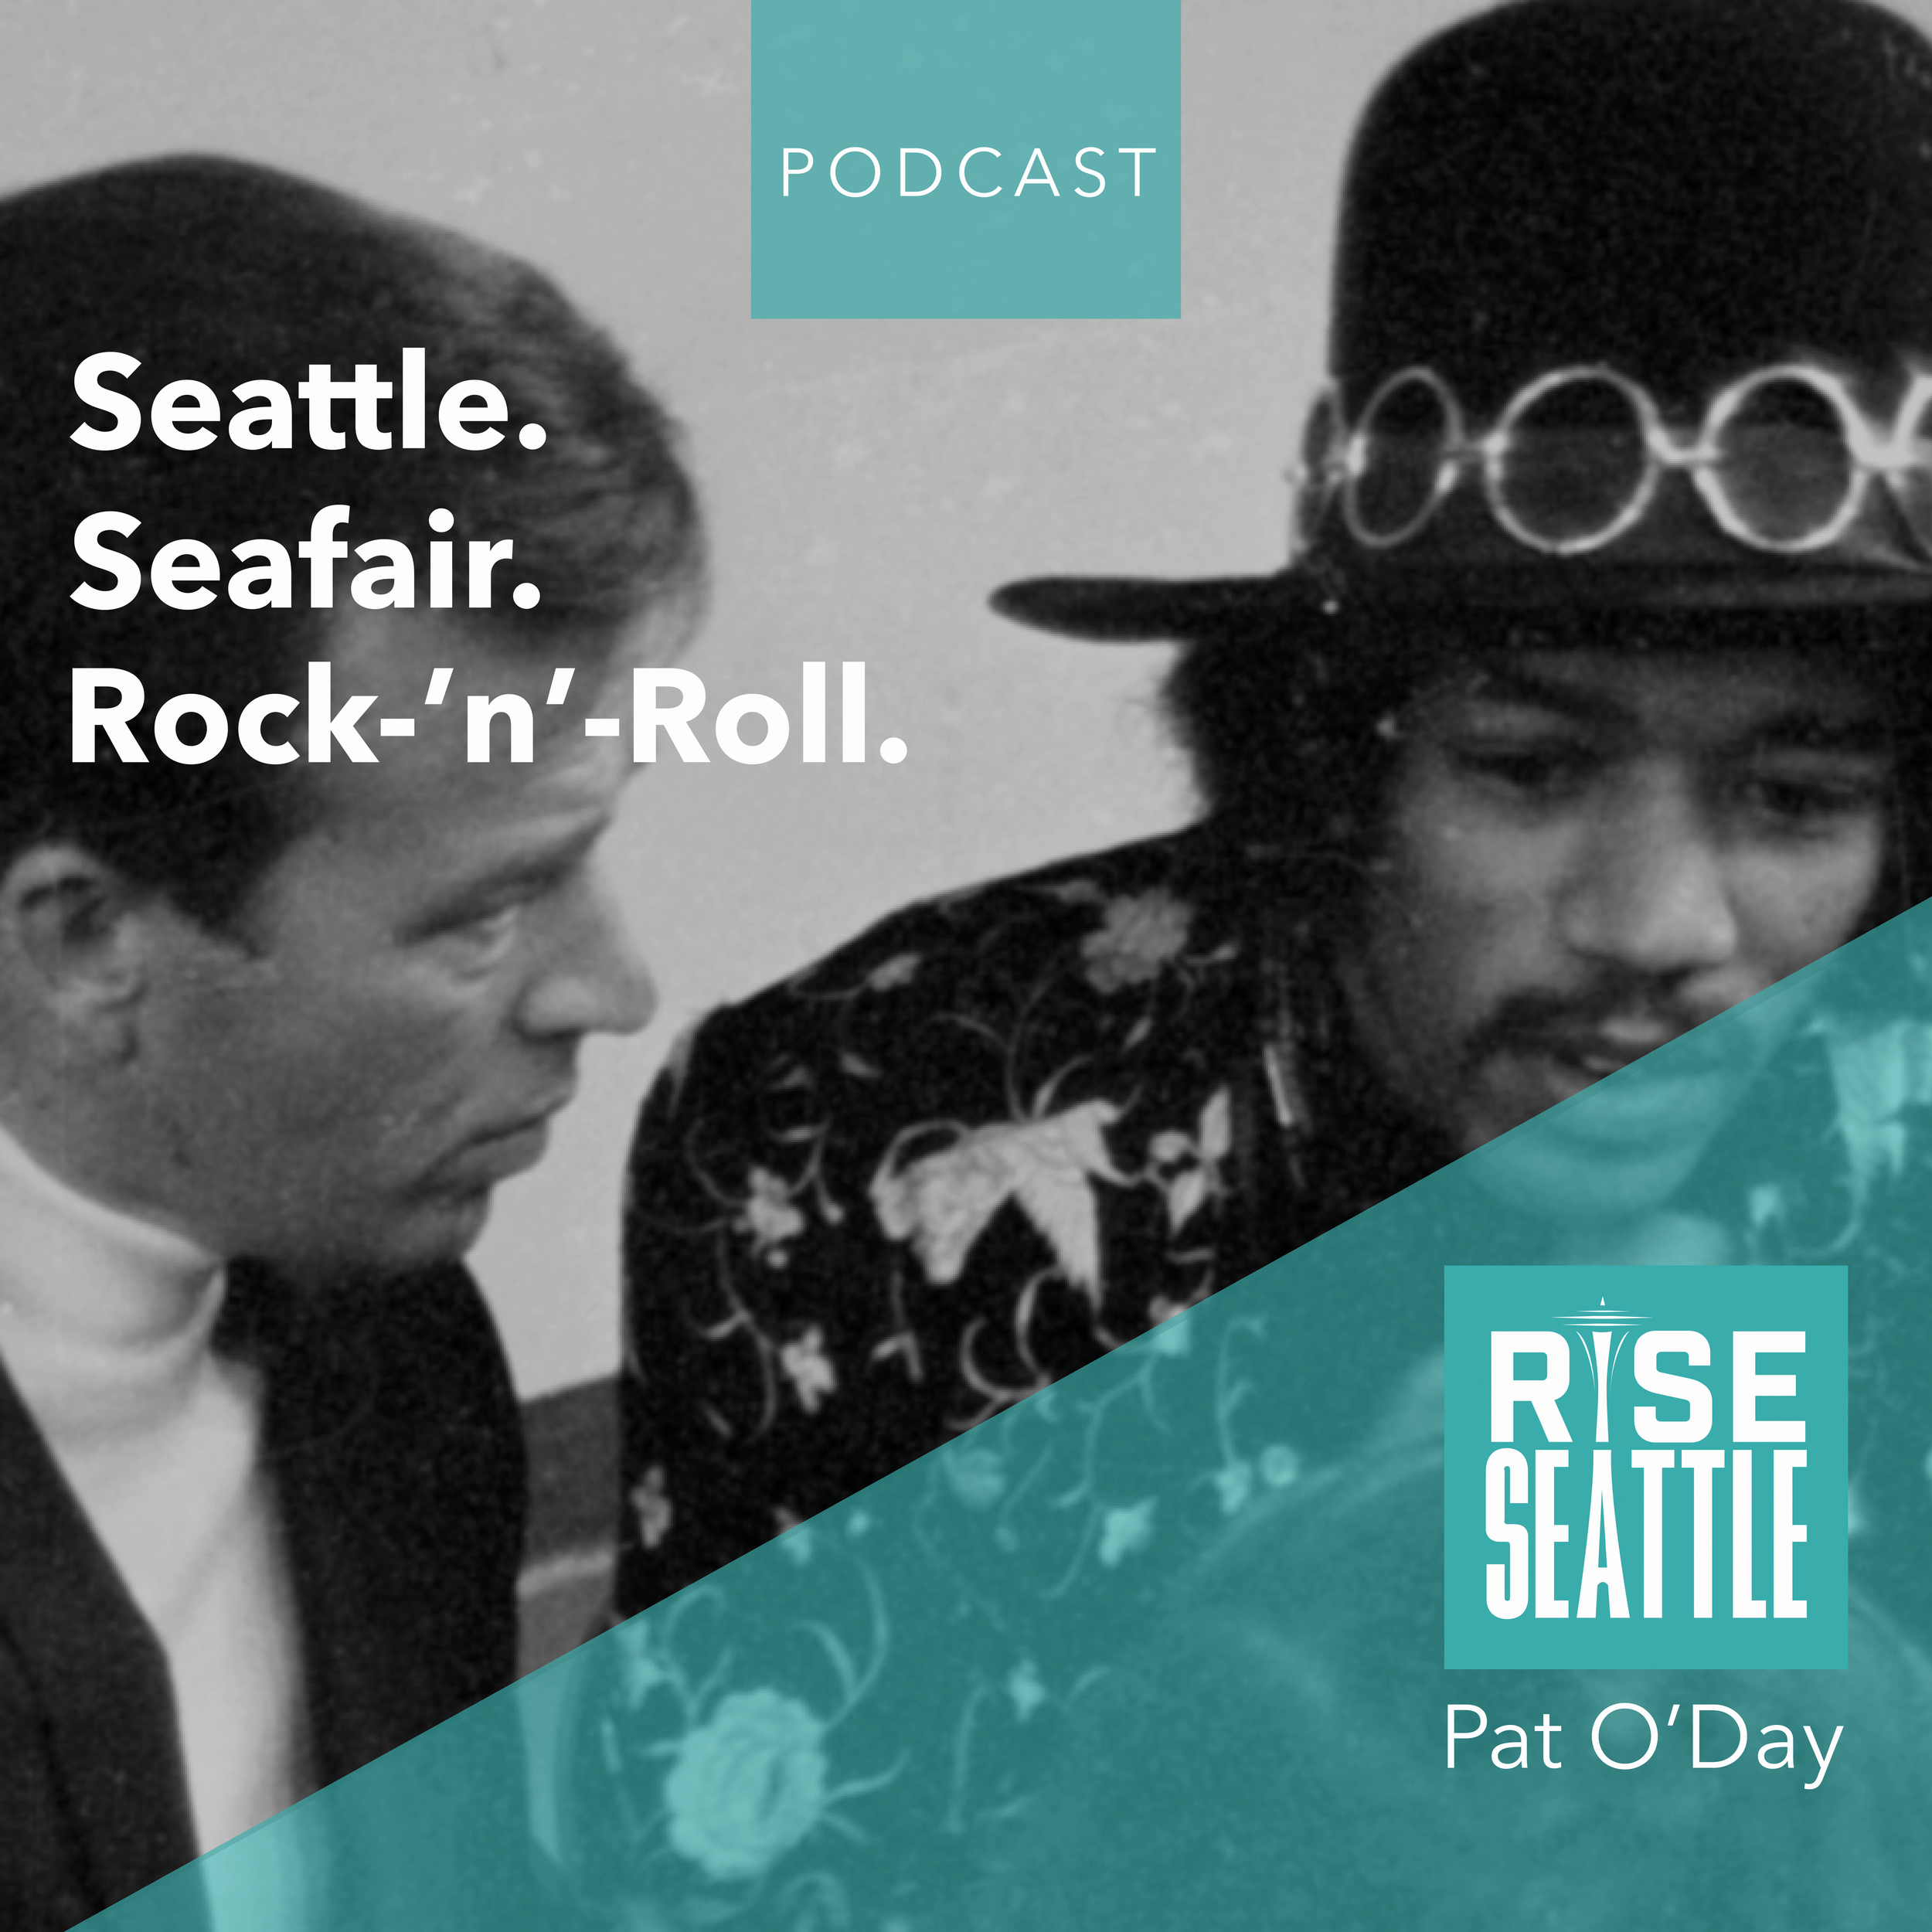 Rise Seattle: Pat O'Day: Seattle, Seafair & Rock'-n'-Roll